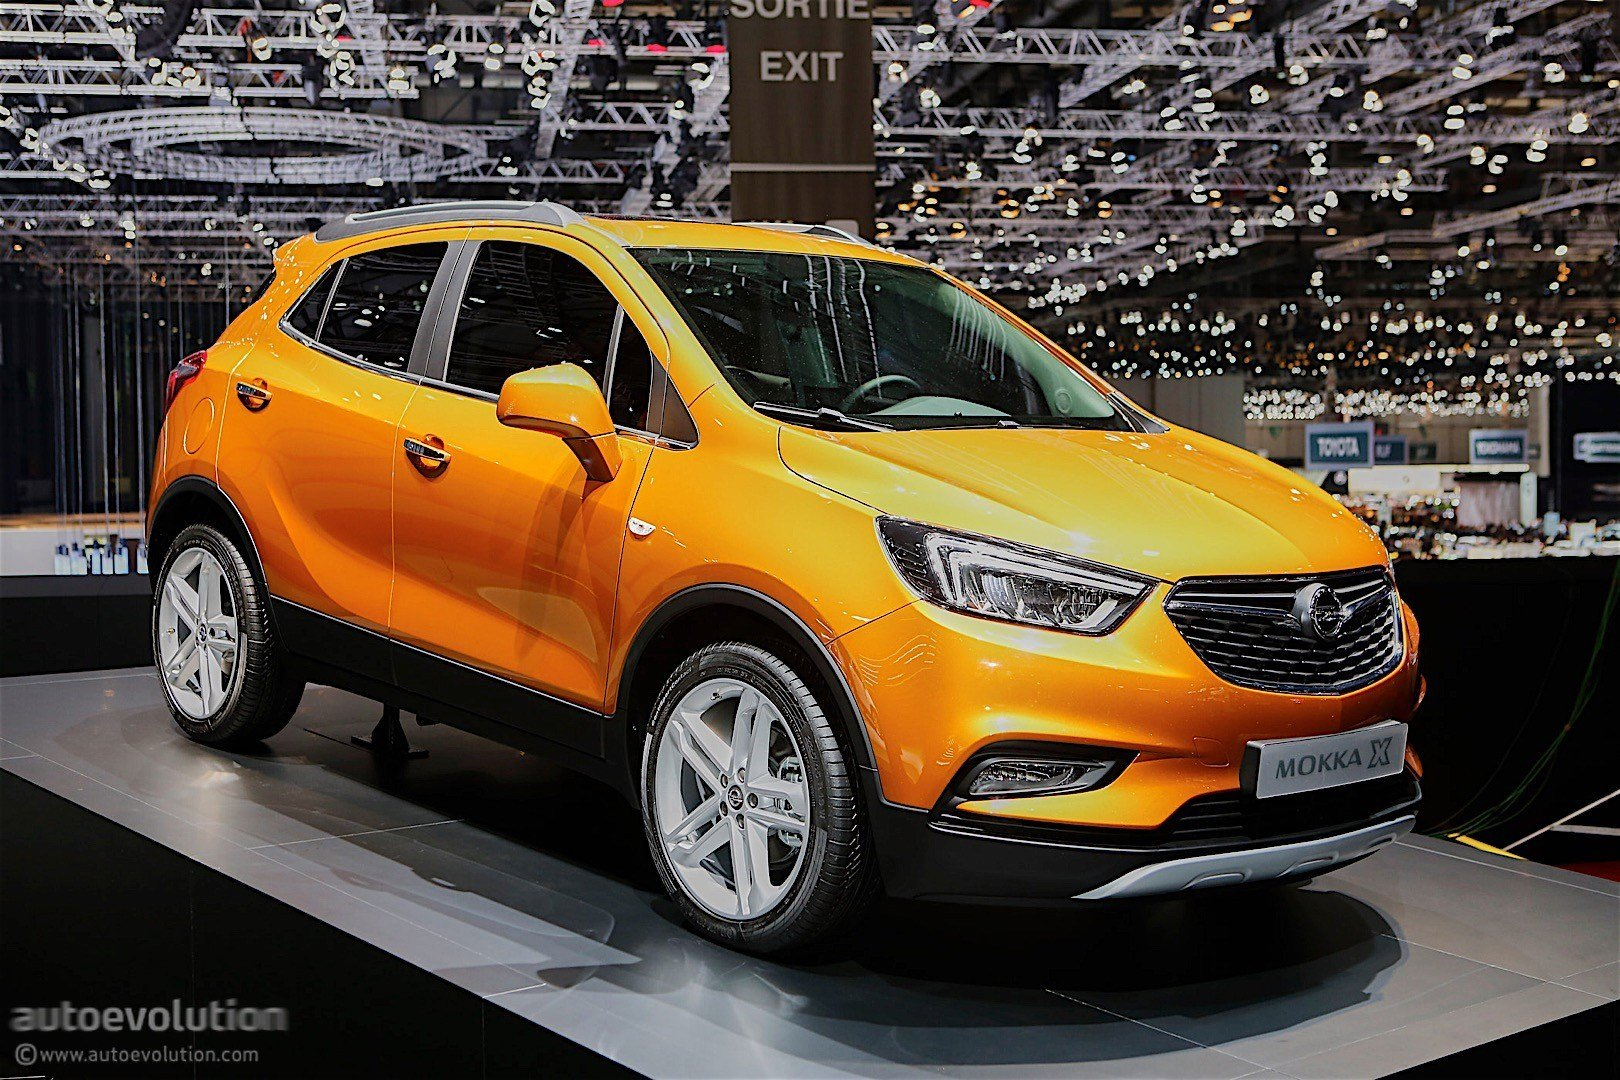 Latest 2016 Opel Mokka X Priced In Germany From €18 990 Free Download